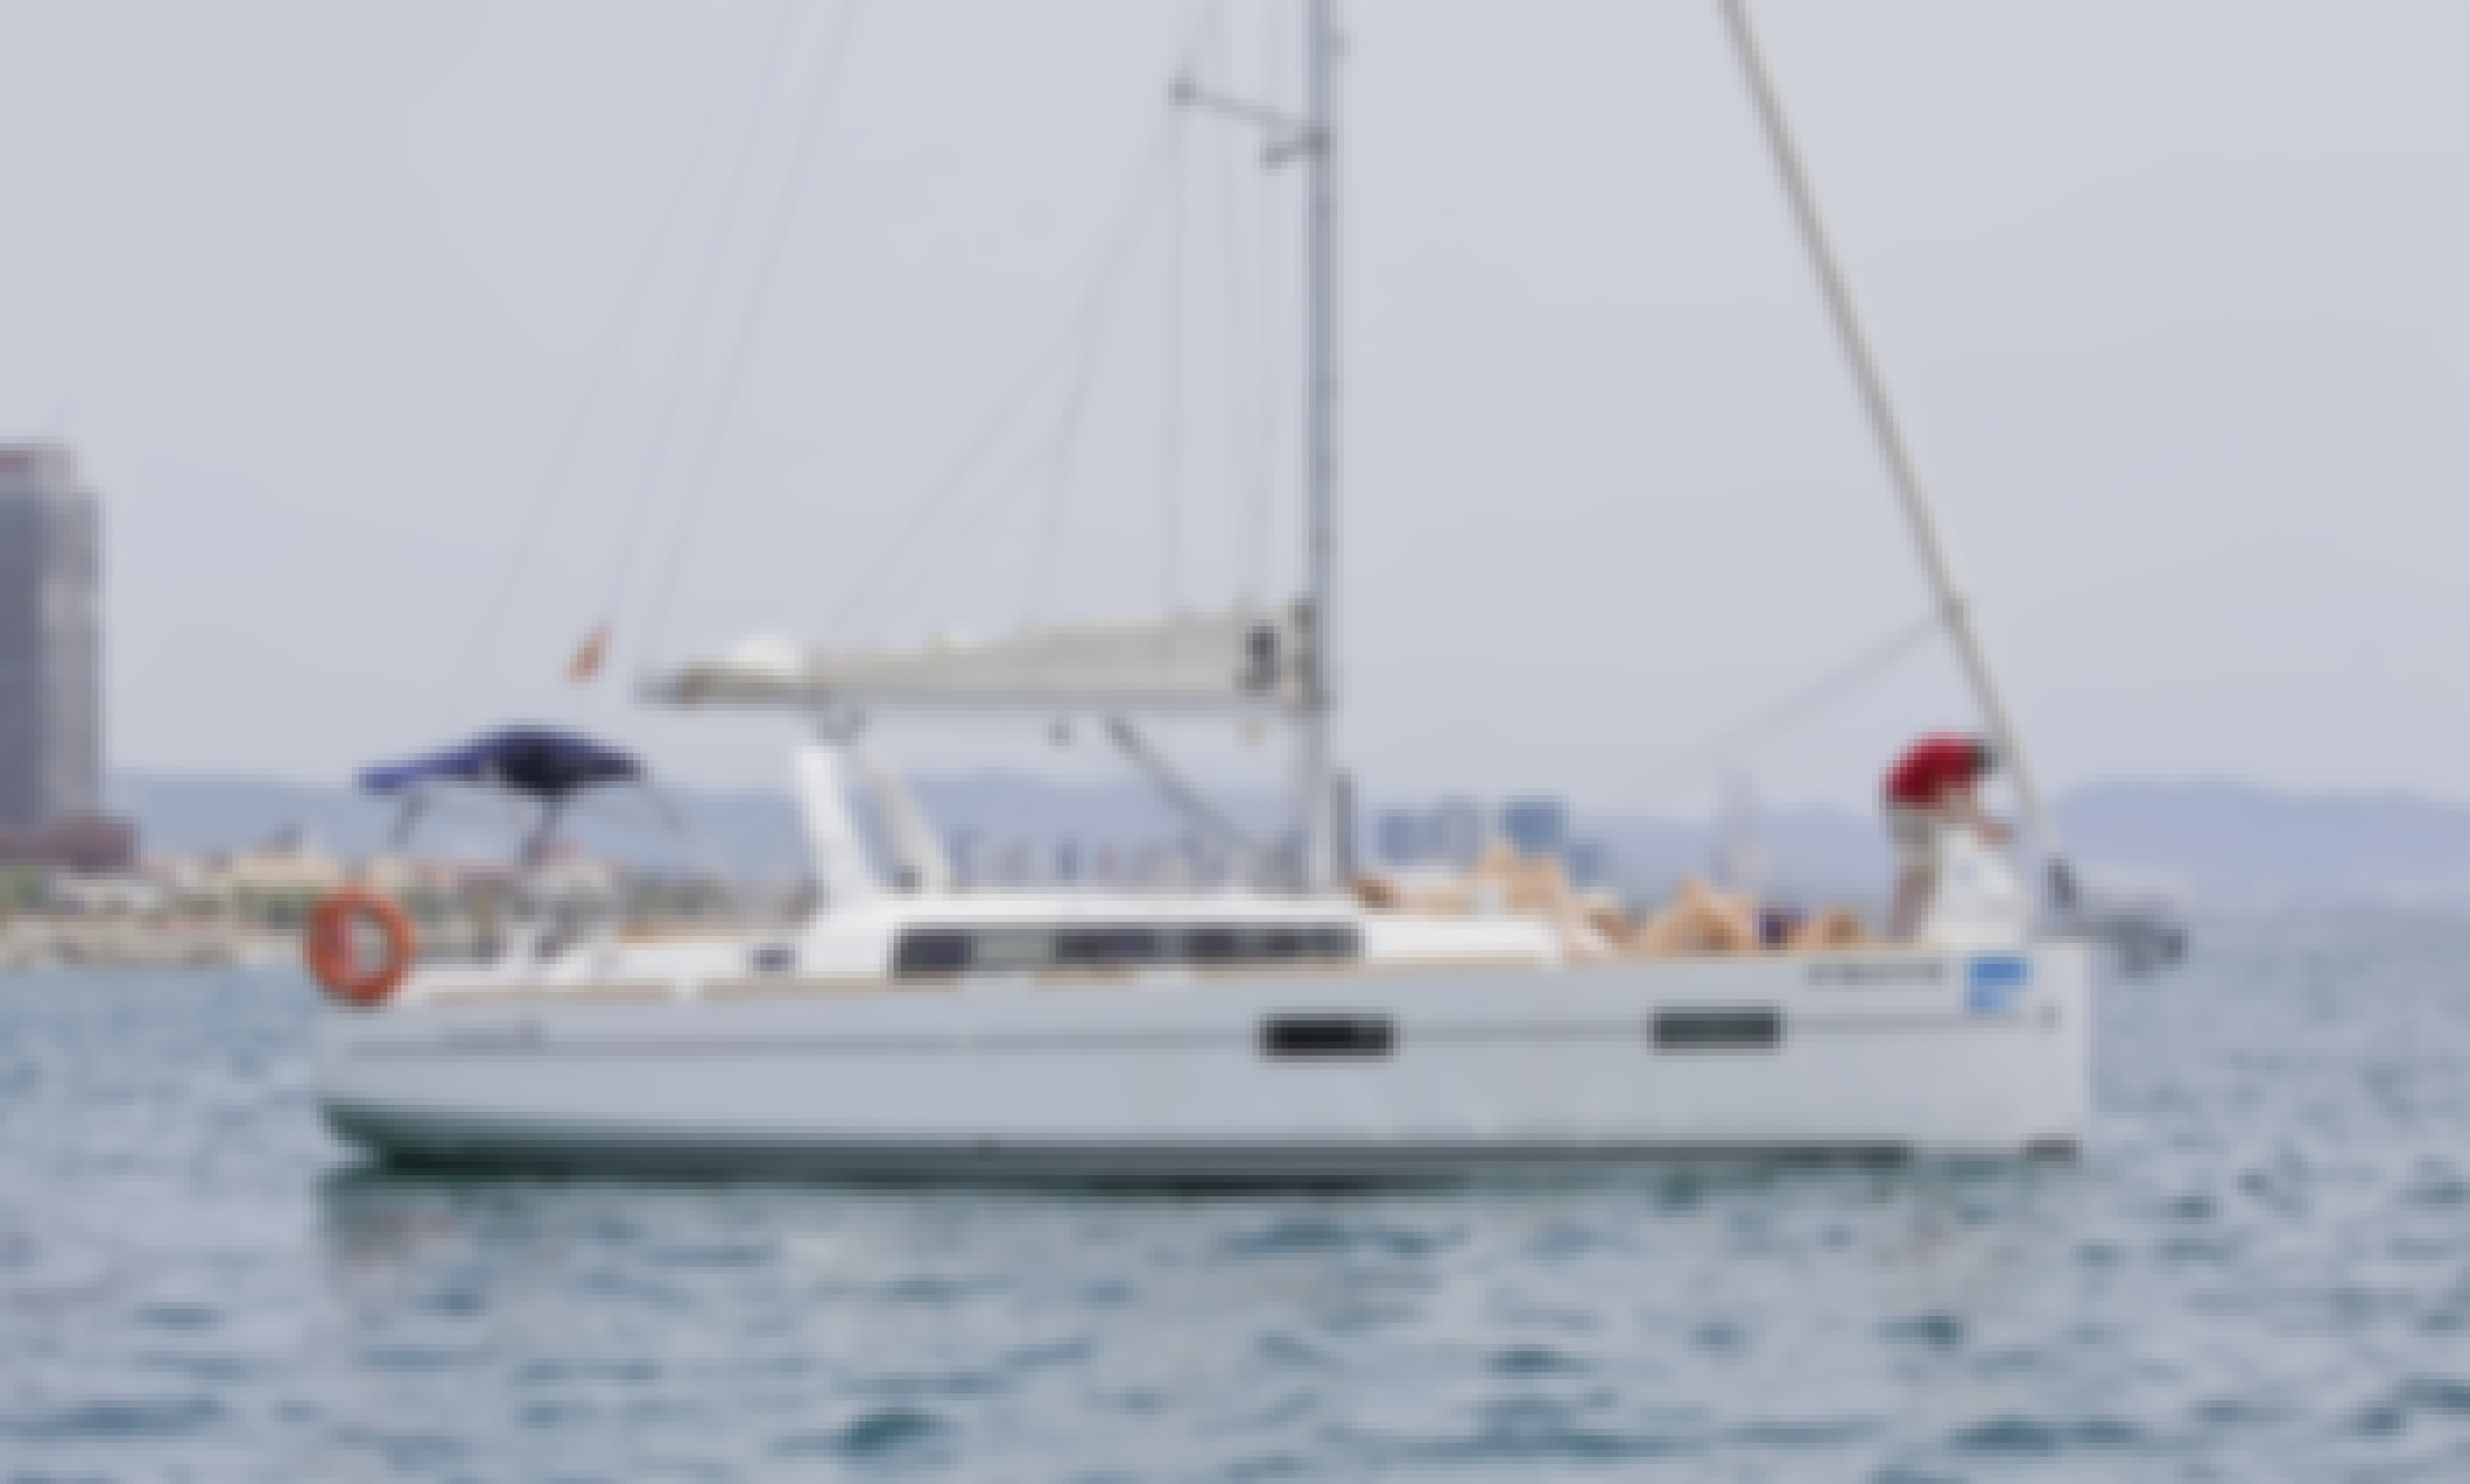 1-Hour Private Sailing Tour for 9 People in Barcelona, Spain!